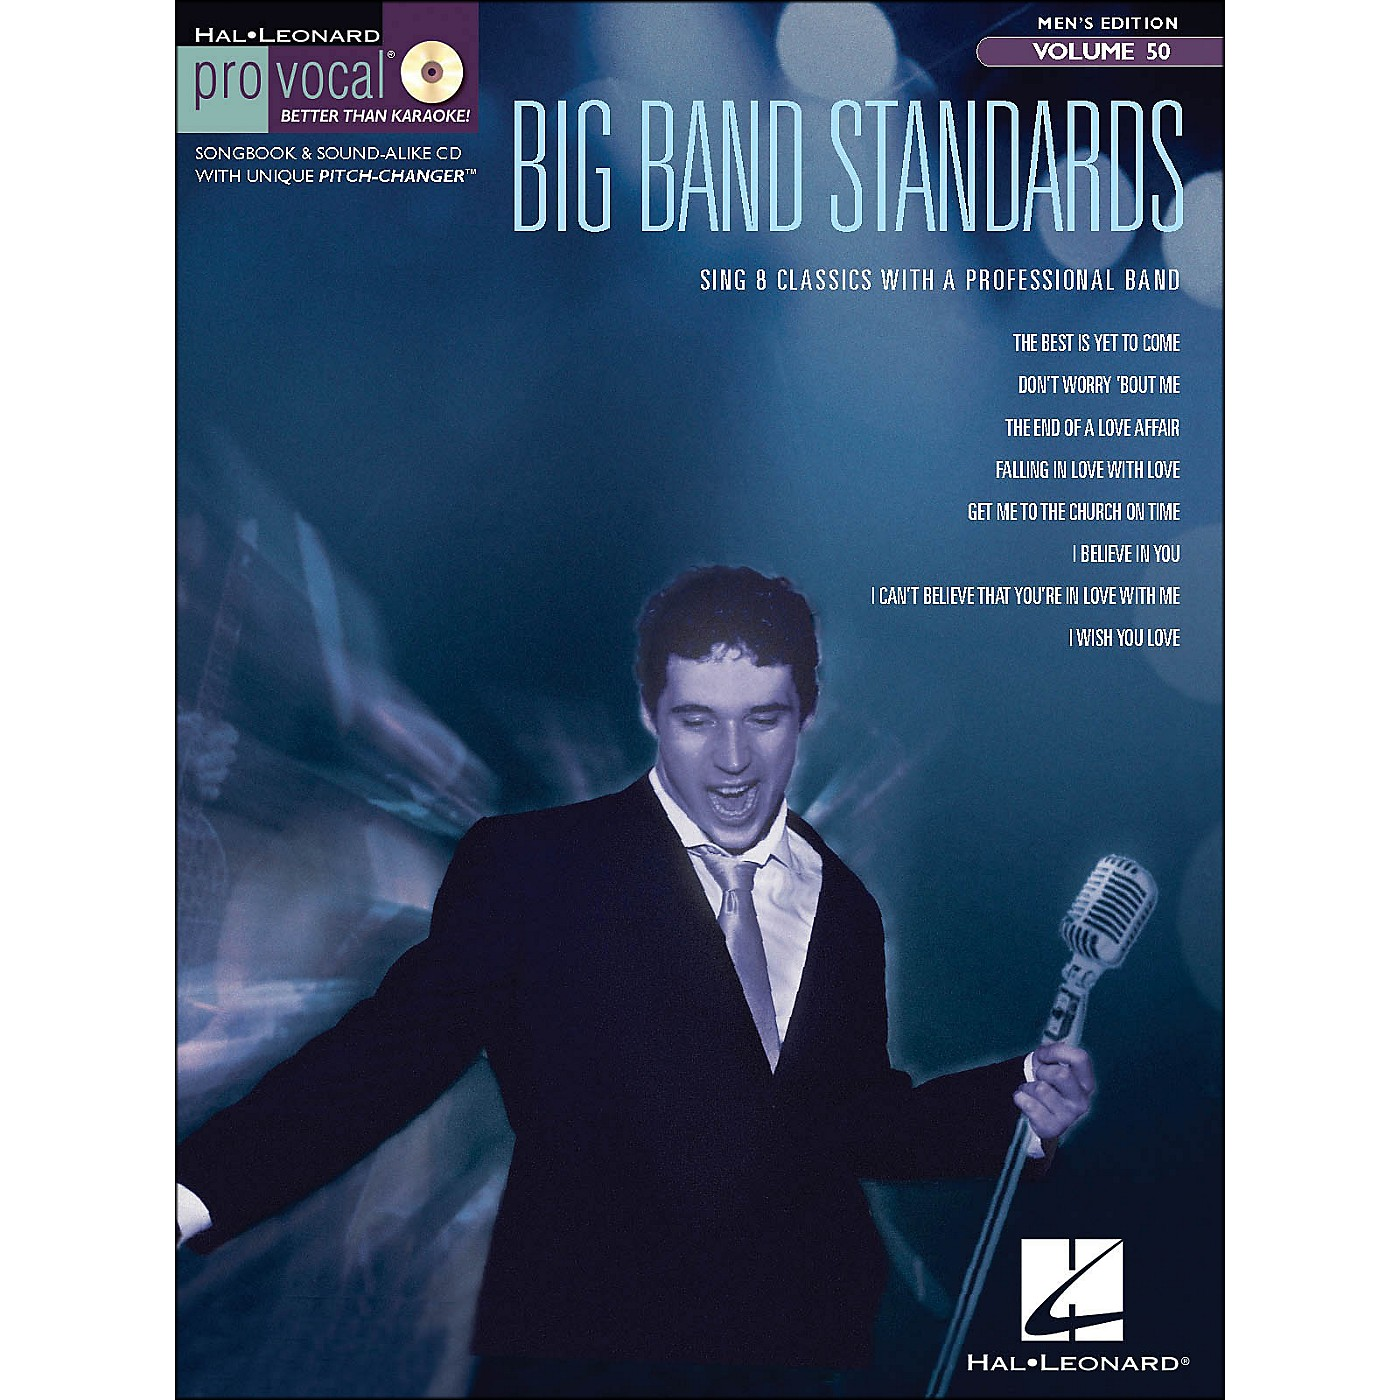 Hal Leonard Big Band Standards - Pro Vocal Songbook & CD for Male Singers Volume 50 thumbnail